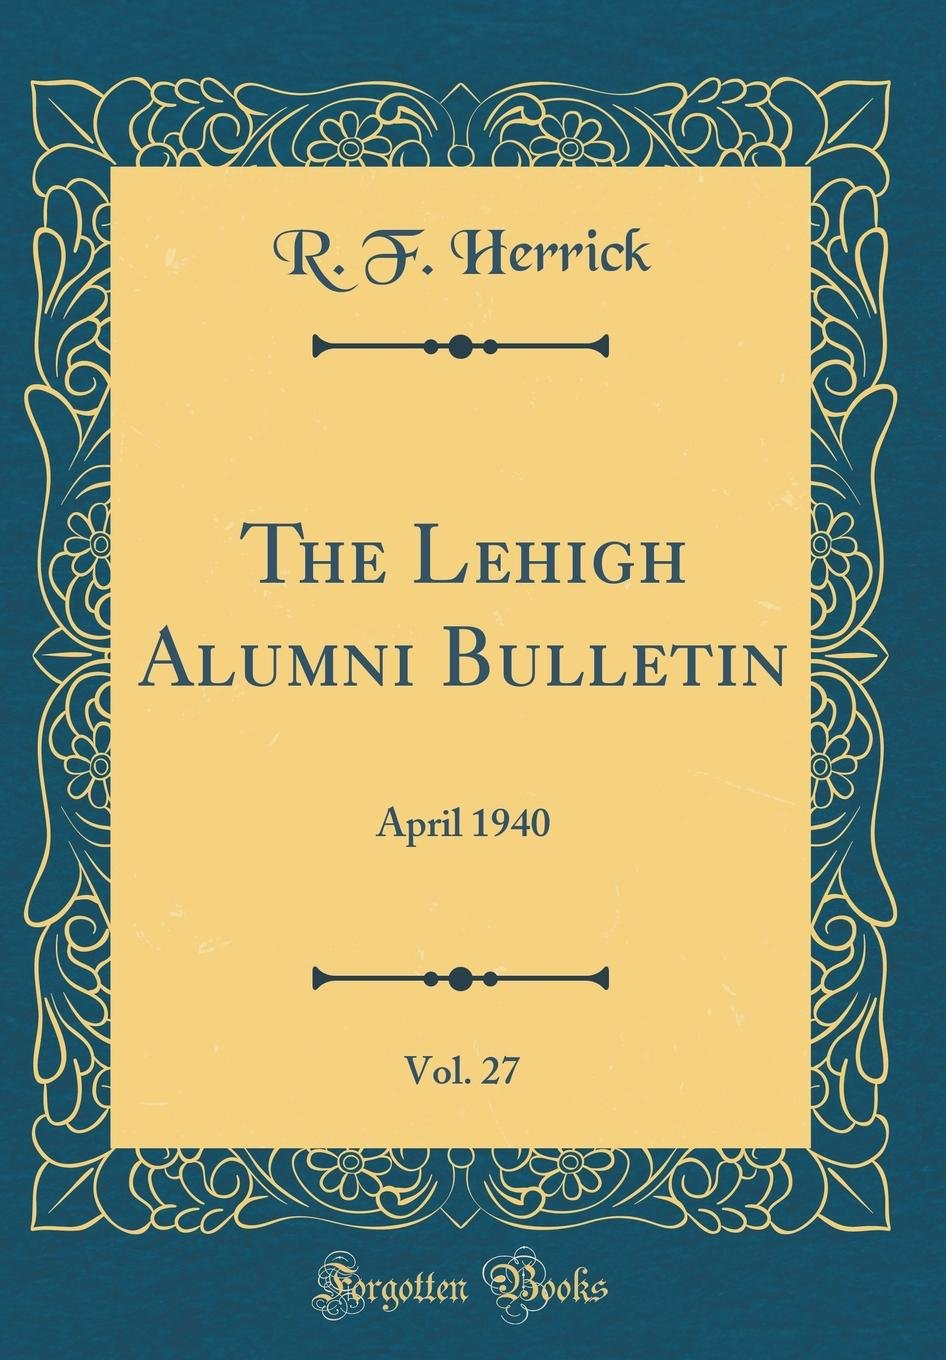 The Lehigh Alumni Bulletin, Vol. 27: April 1940 (Classic Reprint) ebook